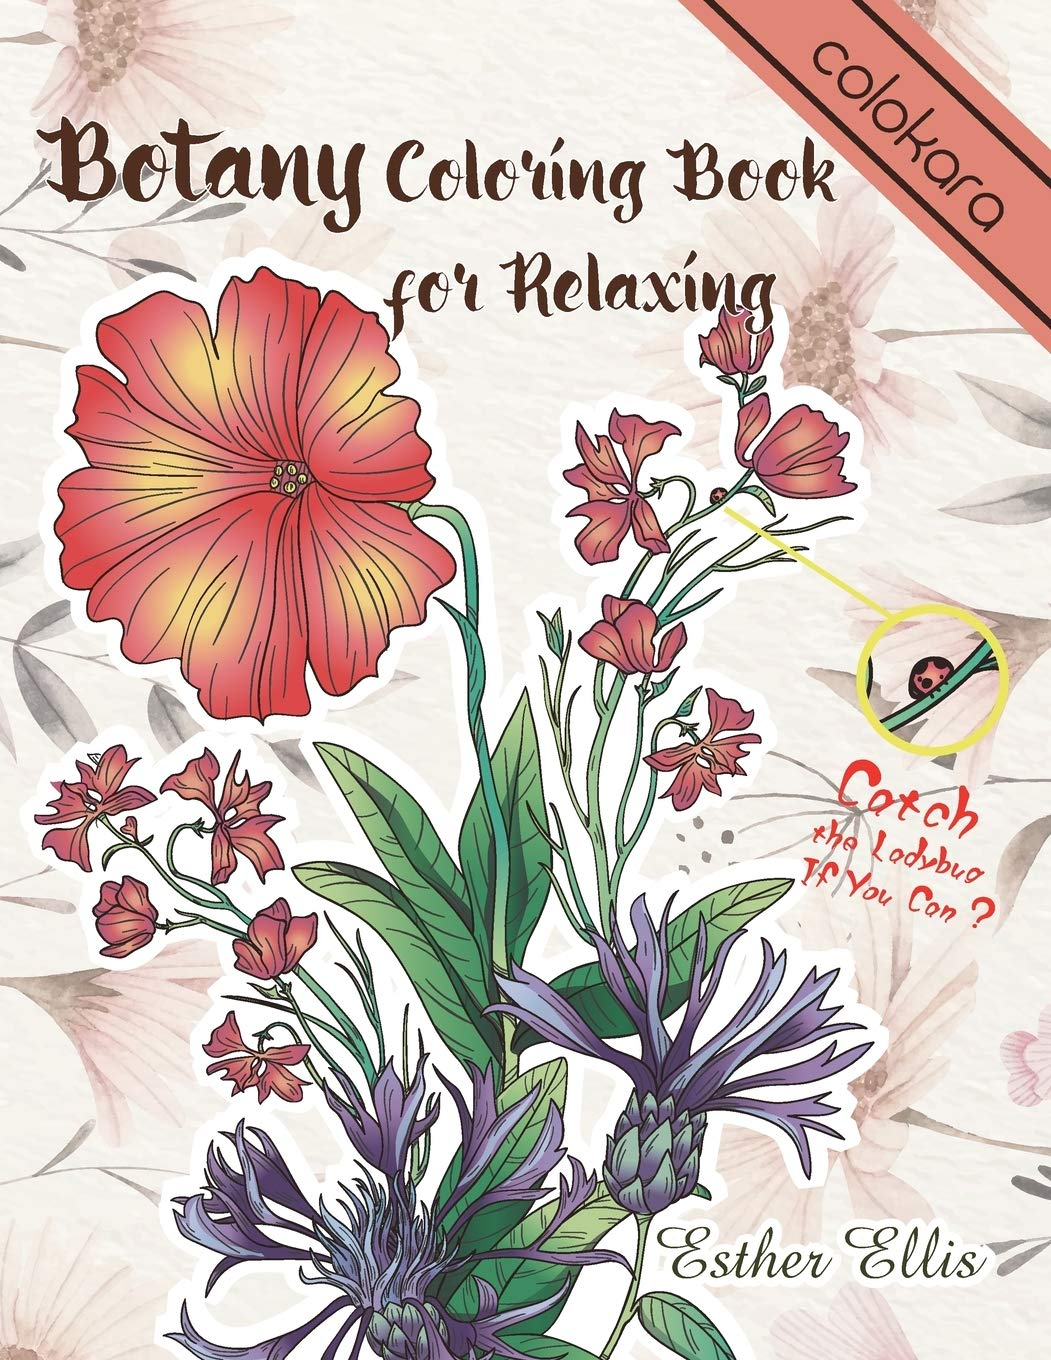 Botany Coloring Book For Relaxing A Flower Adult Coloring Book Beautiful And Awesome Floral Coloring Pages For Adult To Get Stress Relieving And Relaxation Ellis Esther Colokara 9781731517463 Amazon Com Books